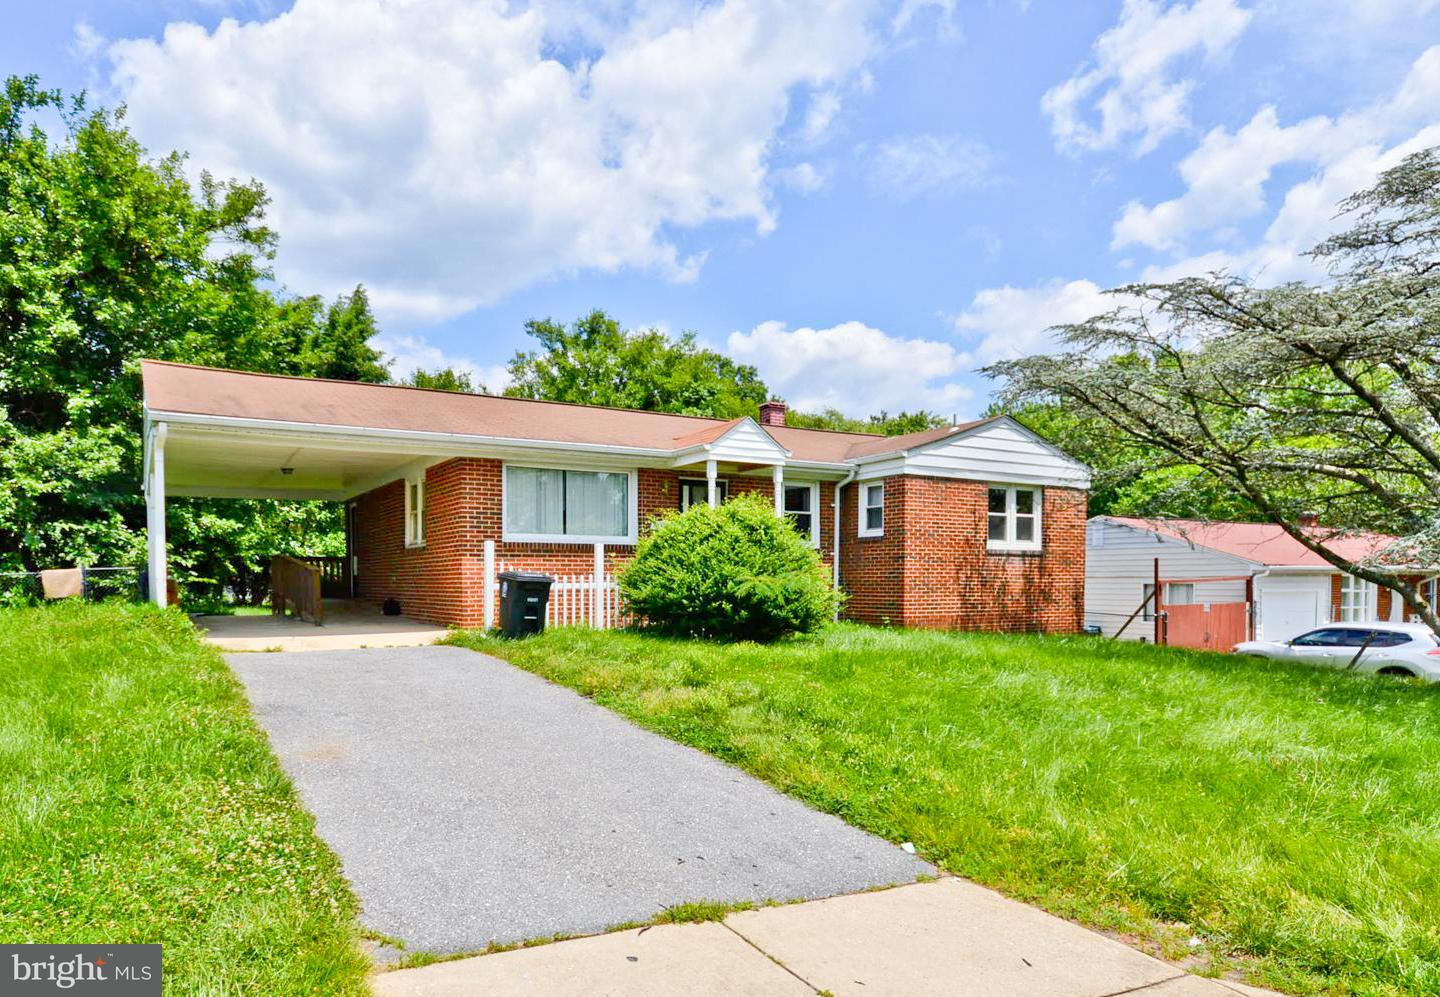 Other Residential for Rent at 8802 Orbit Ln Lanham, Maryland 20706 United States